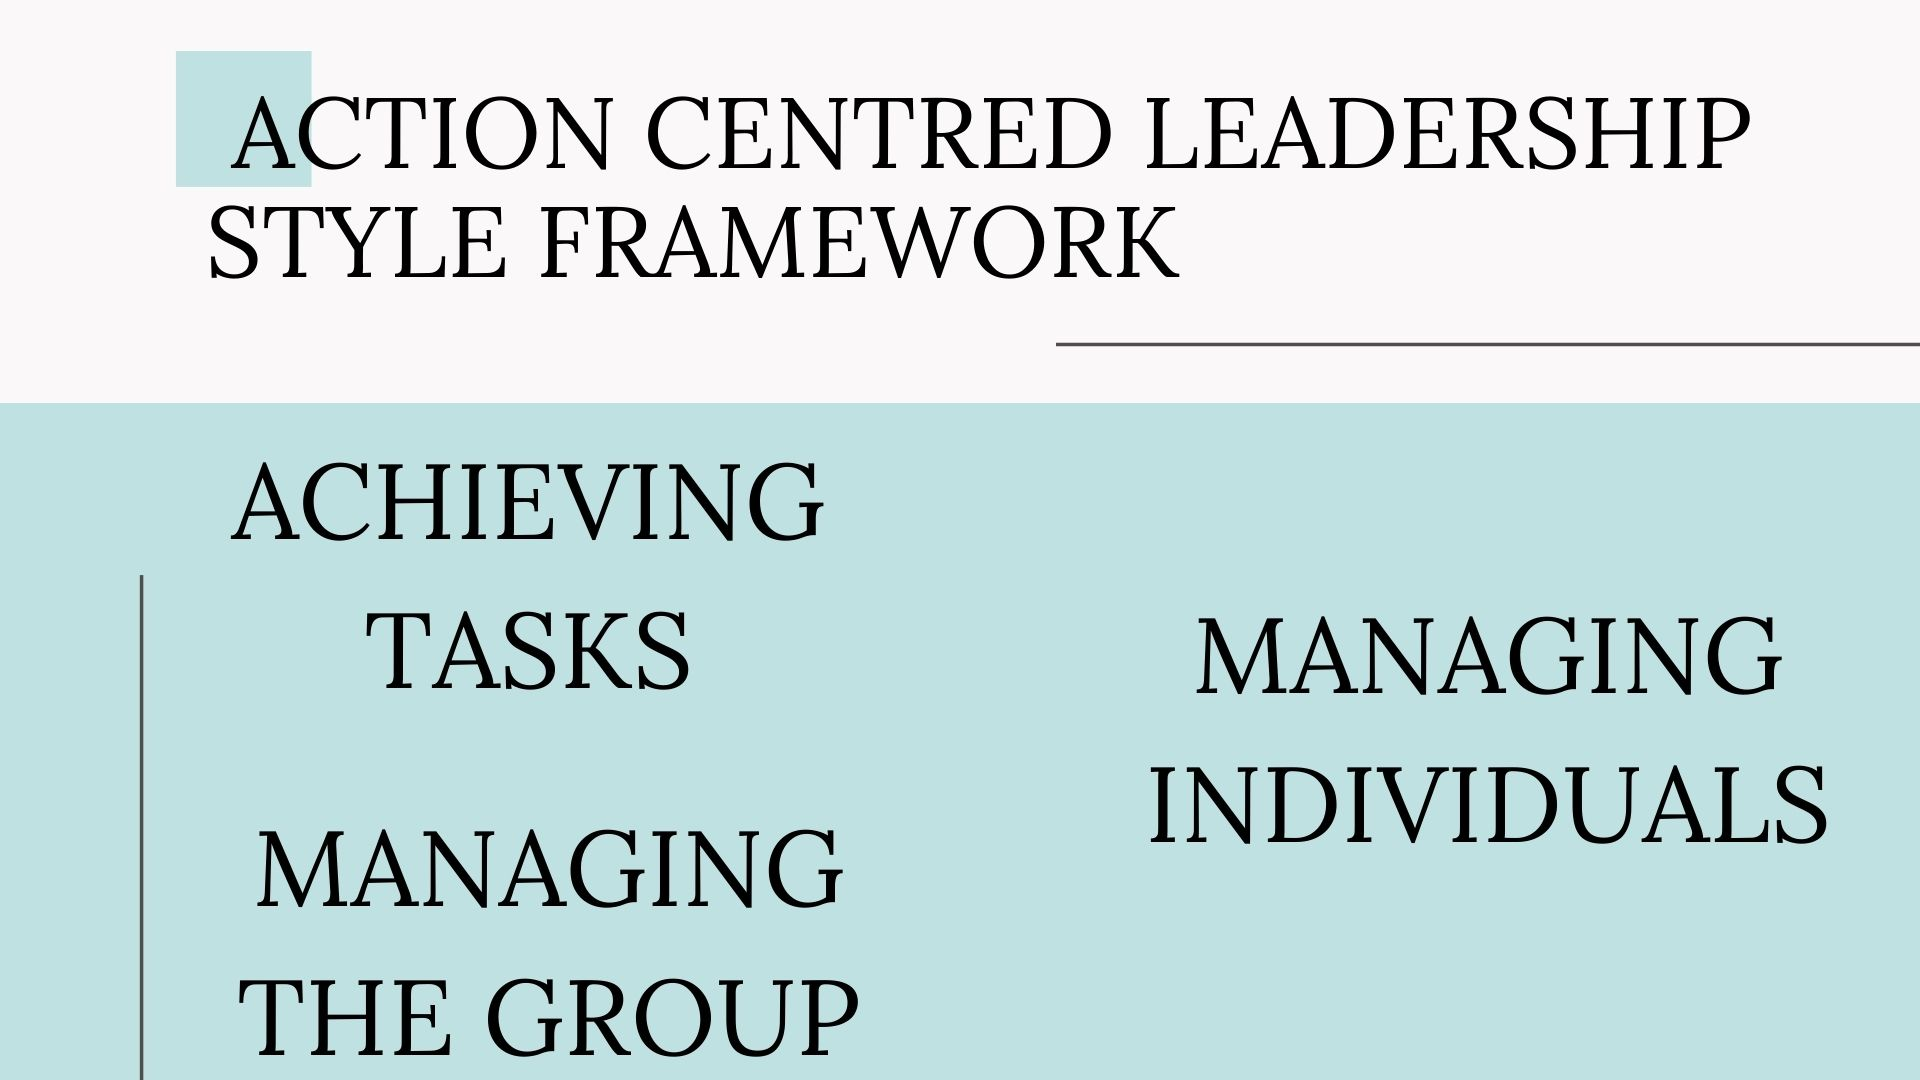 framework of this Action Centred Leadership Style